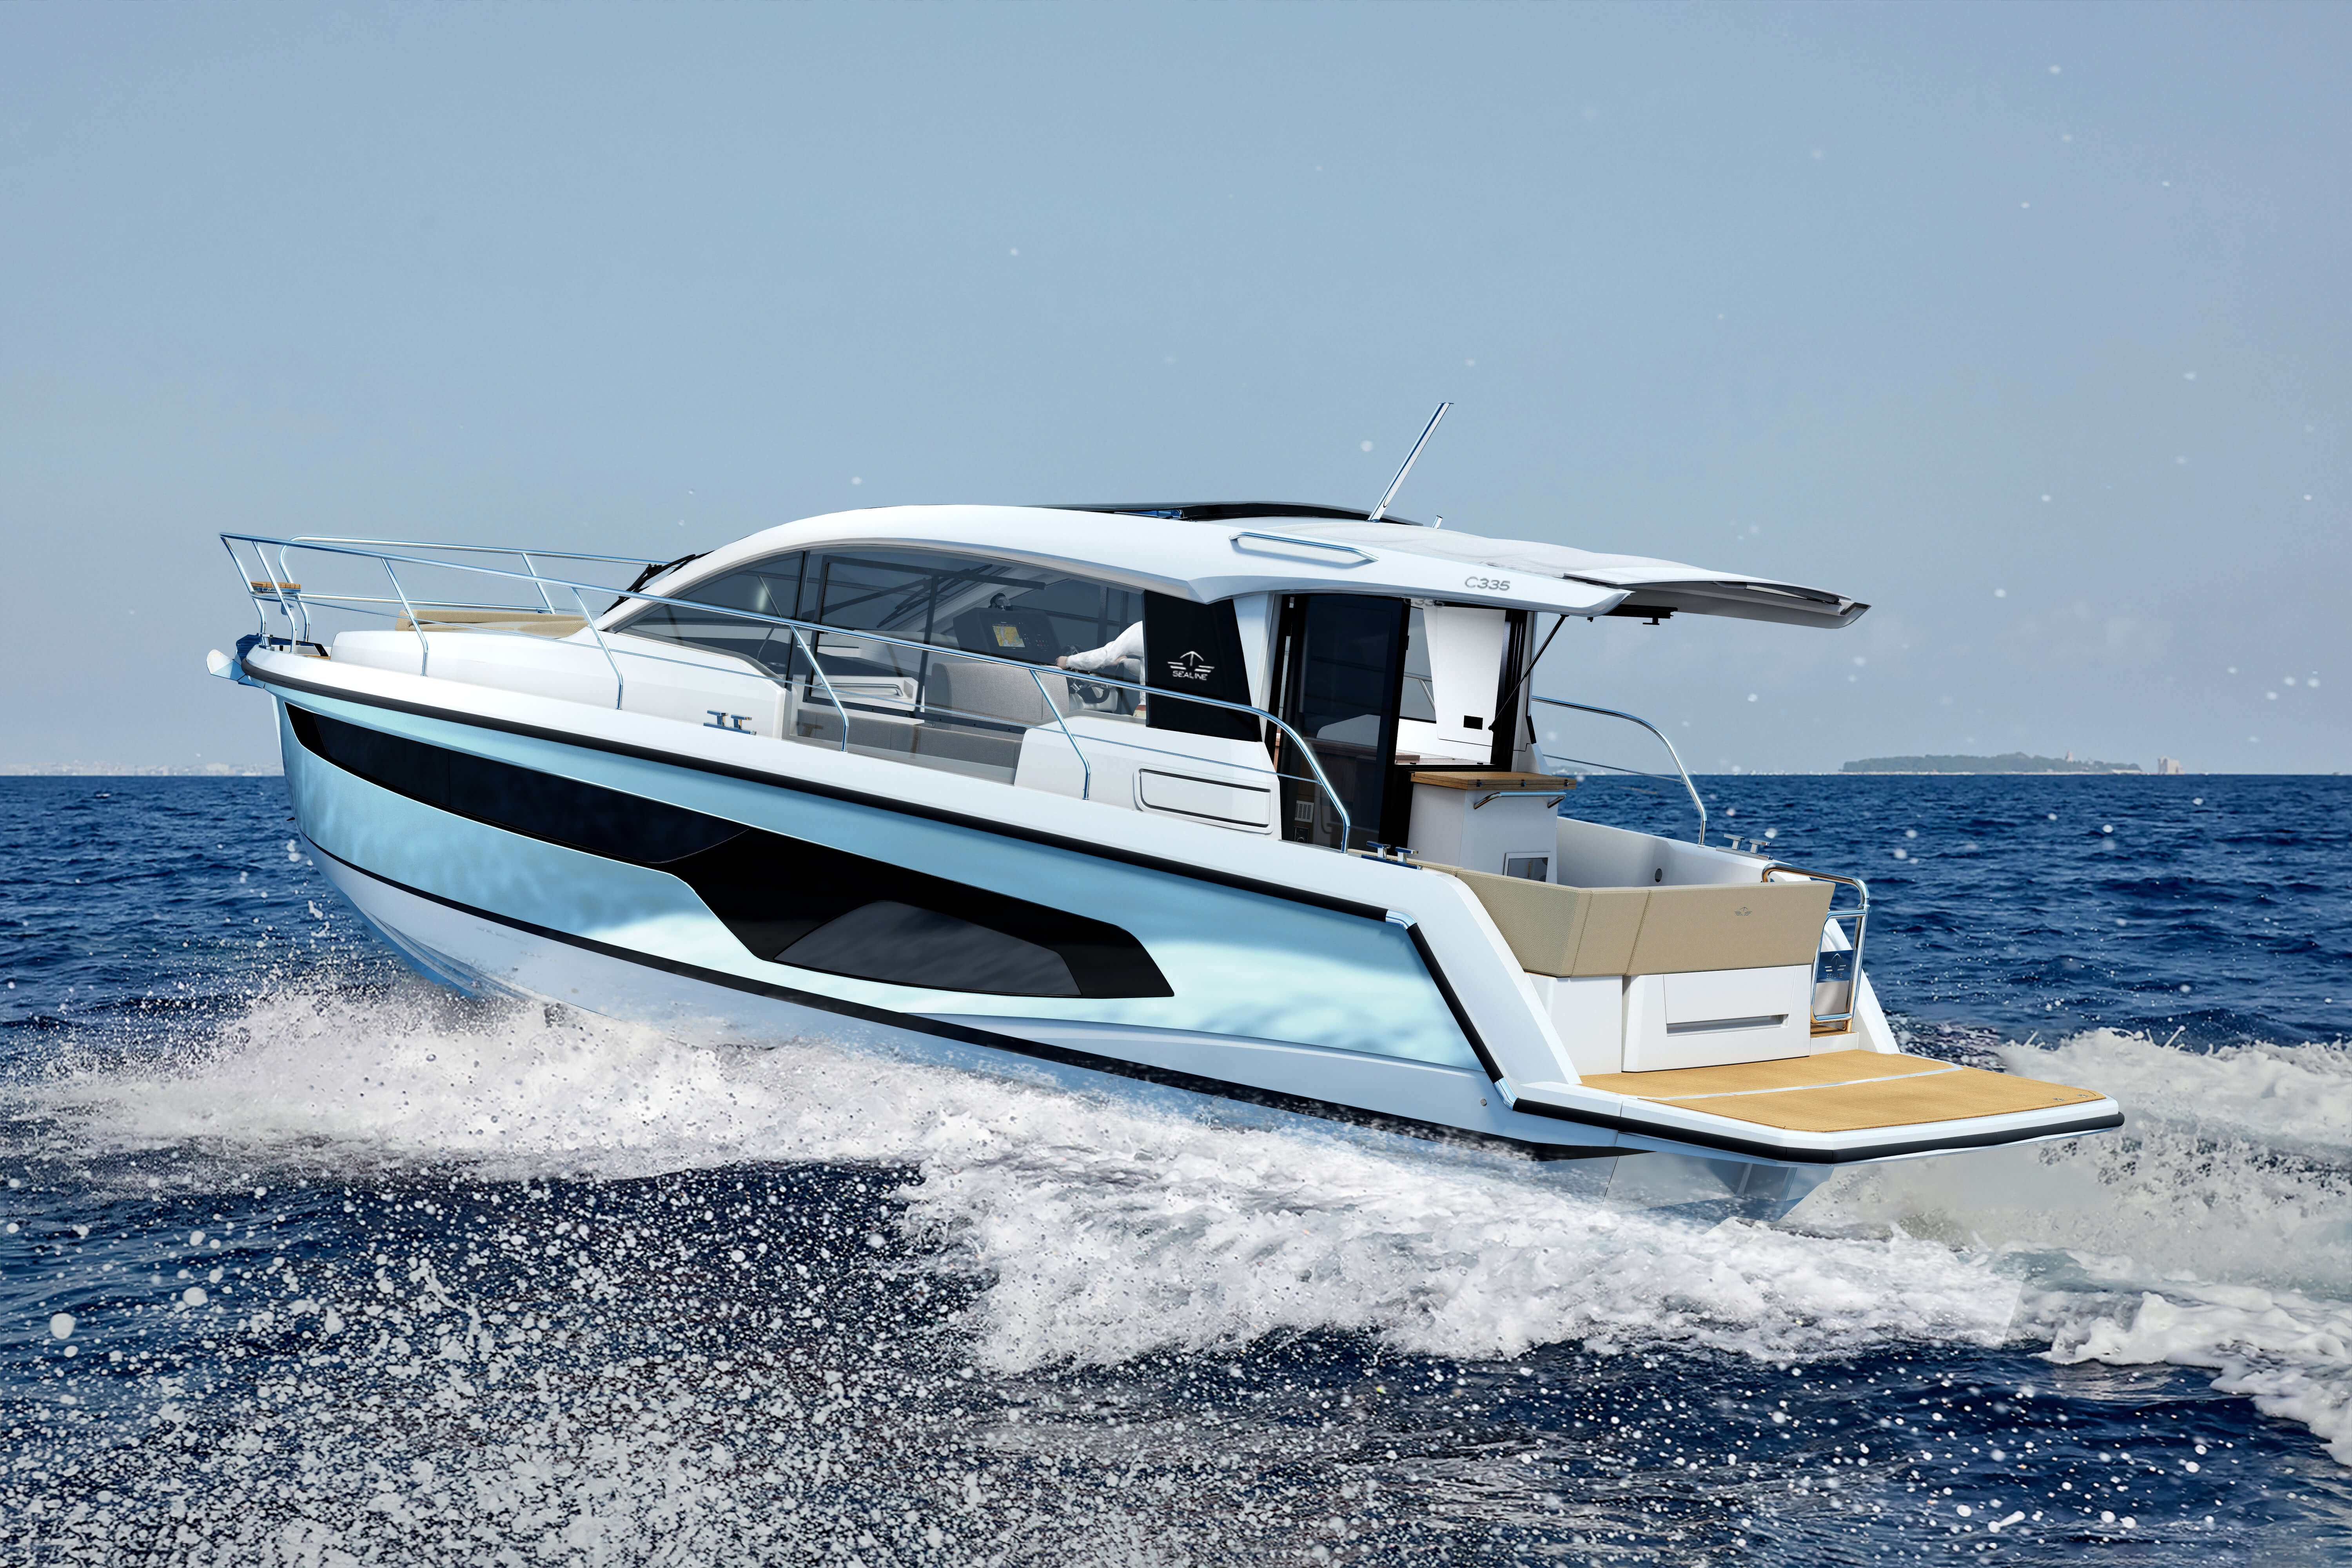 Sealine C335 exterior | The voluminous superstructure promises a joyful cruise on every seamile travelled. | Sealine